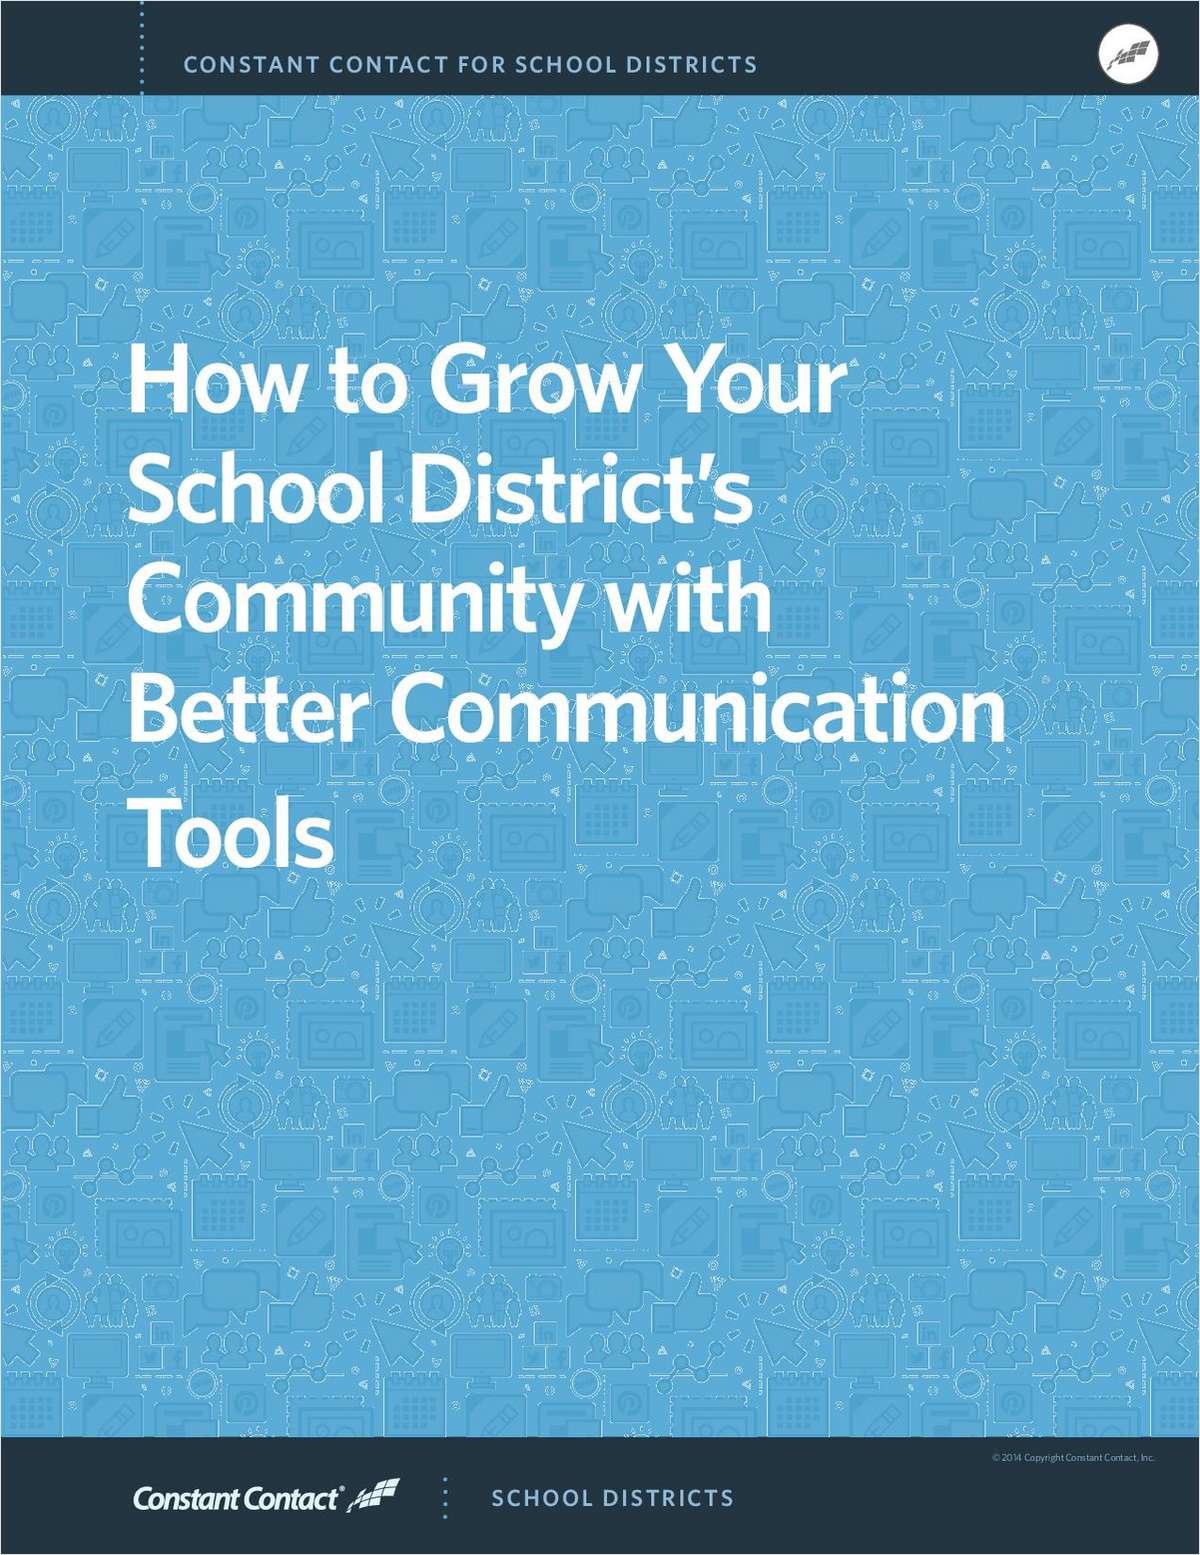 How to Grow Your K12 School District's Community with Better Communication Tools